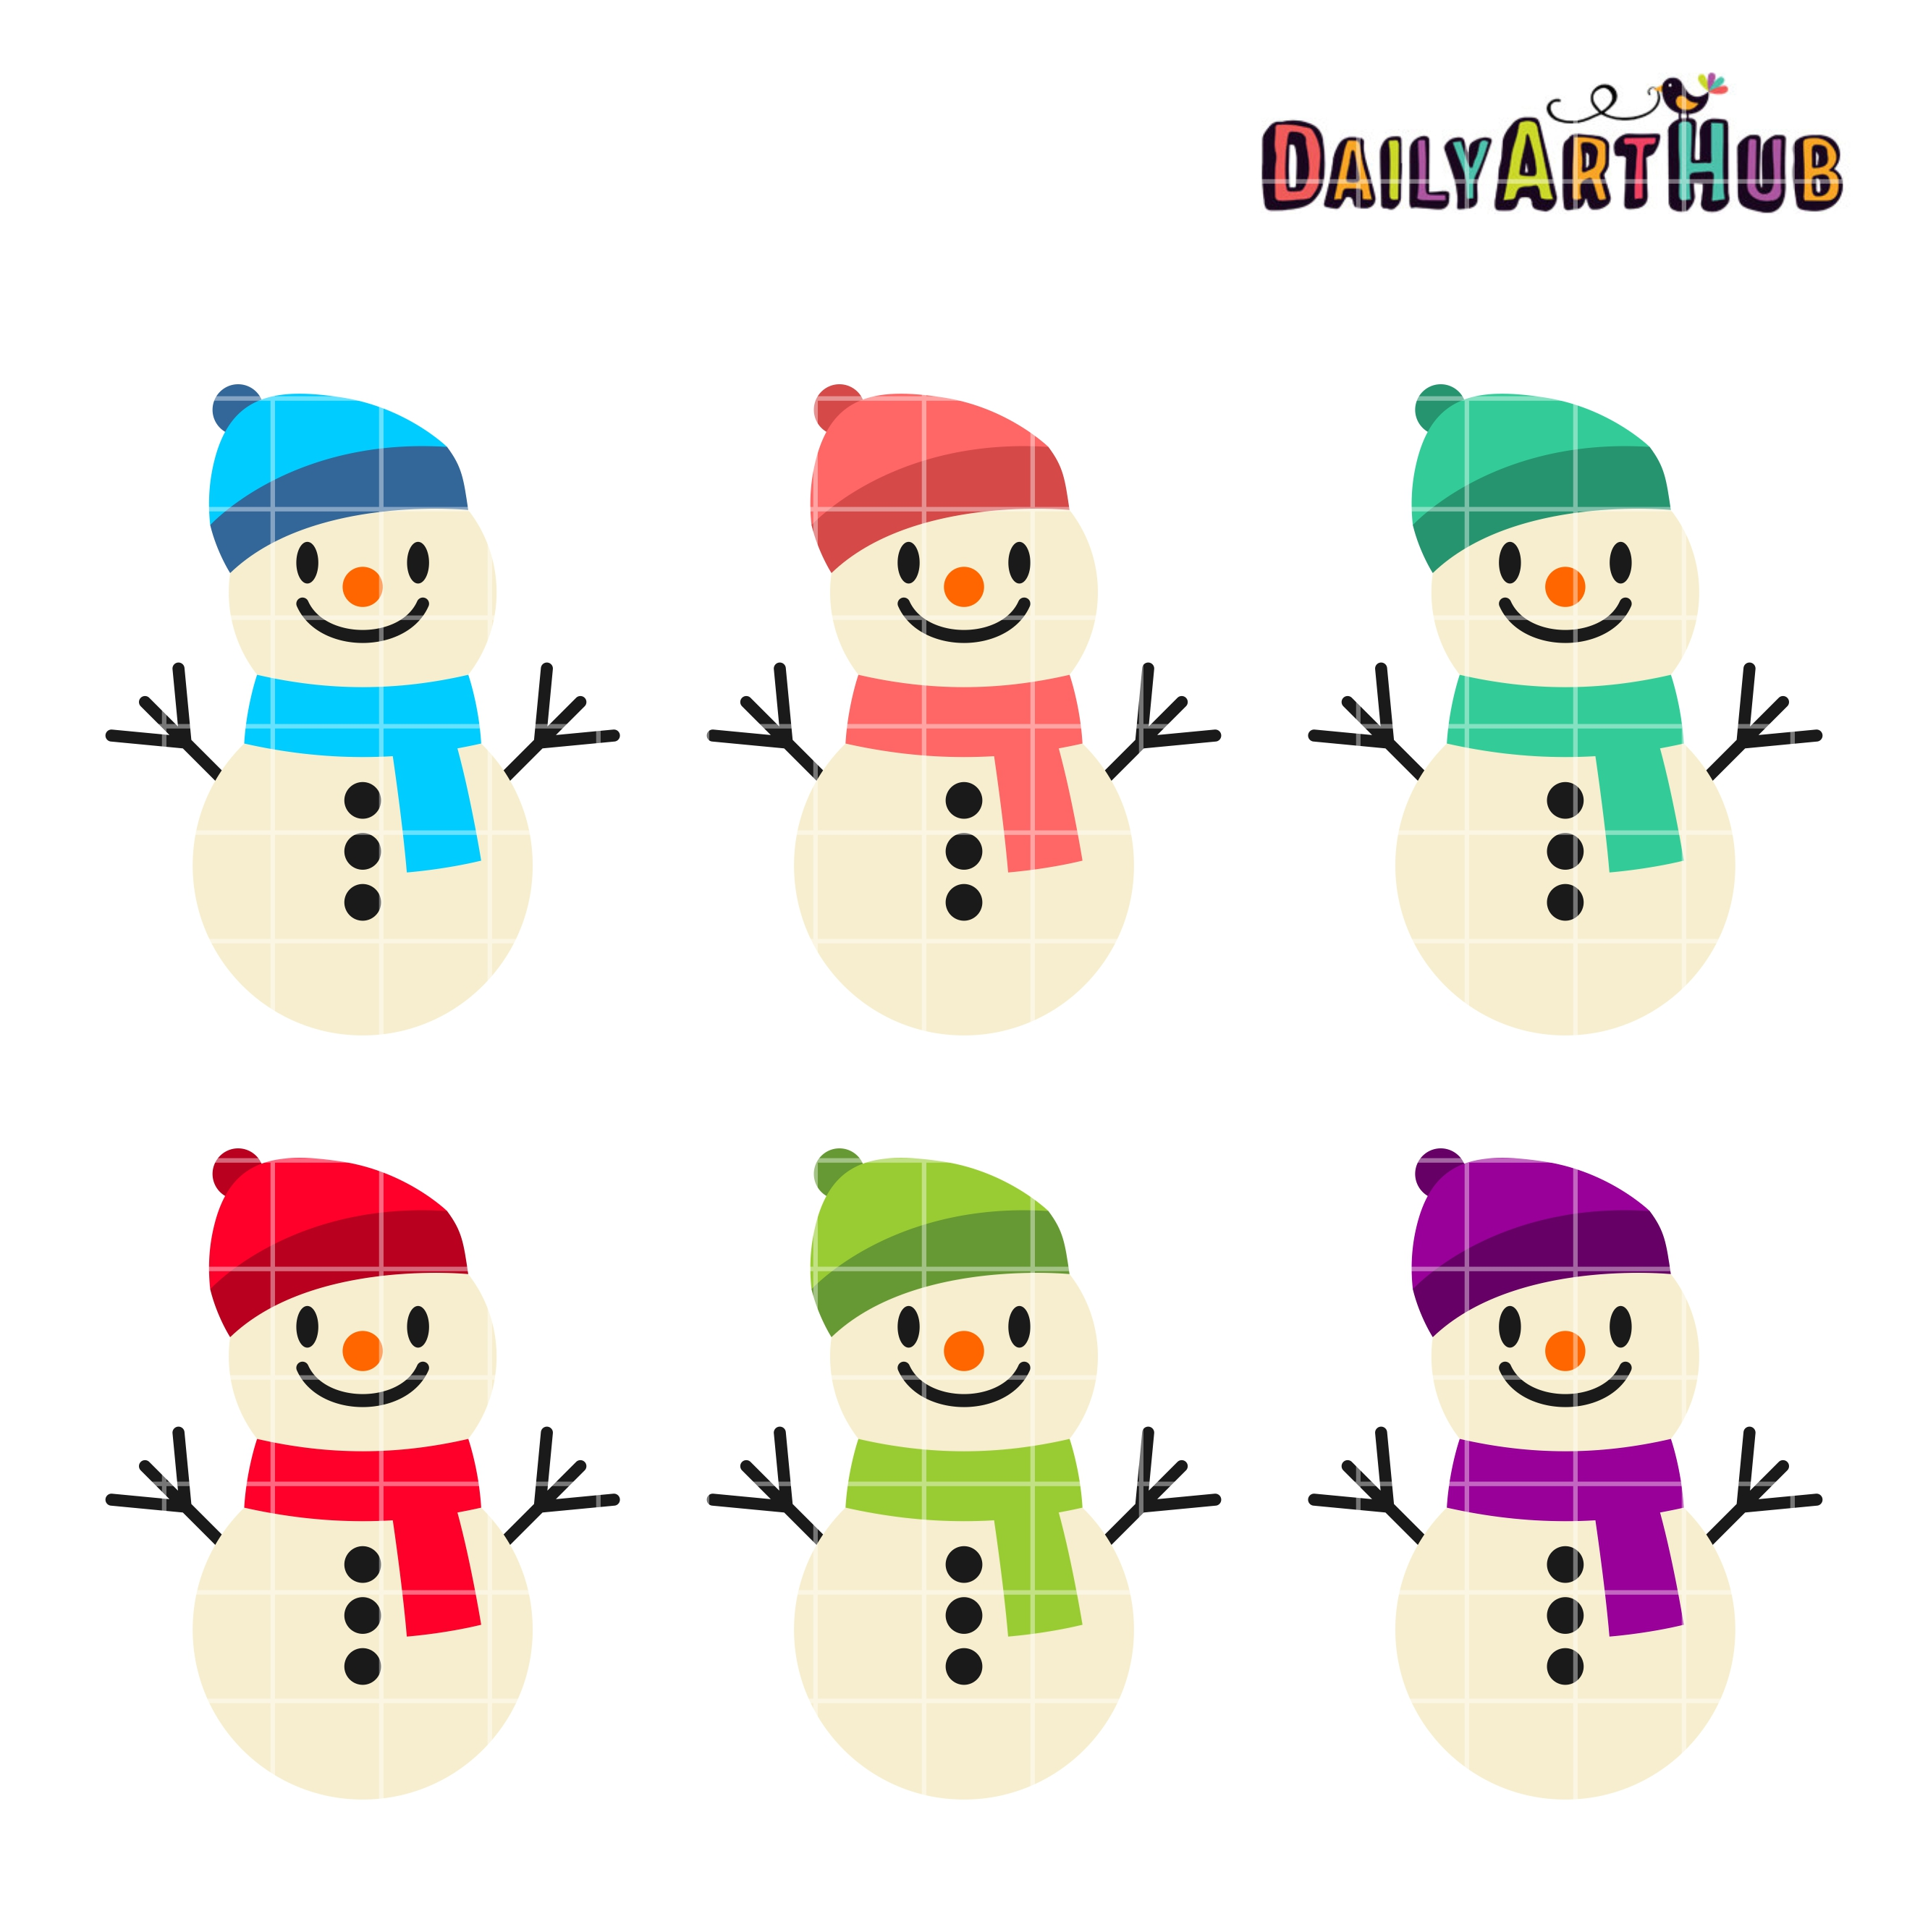 2664x2670 Funny Cute Snowmen Clip Art Set Daily Art Hub